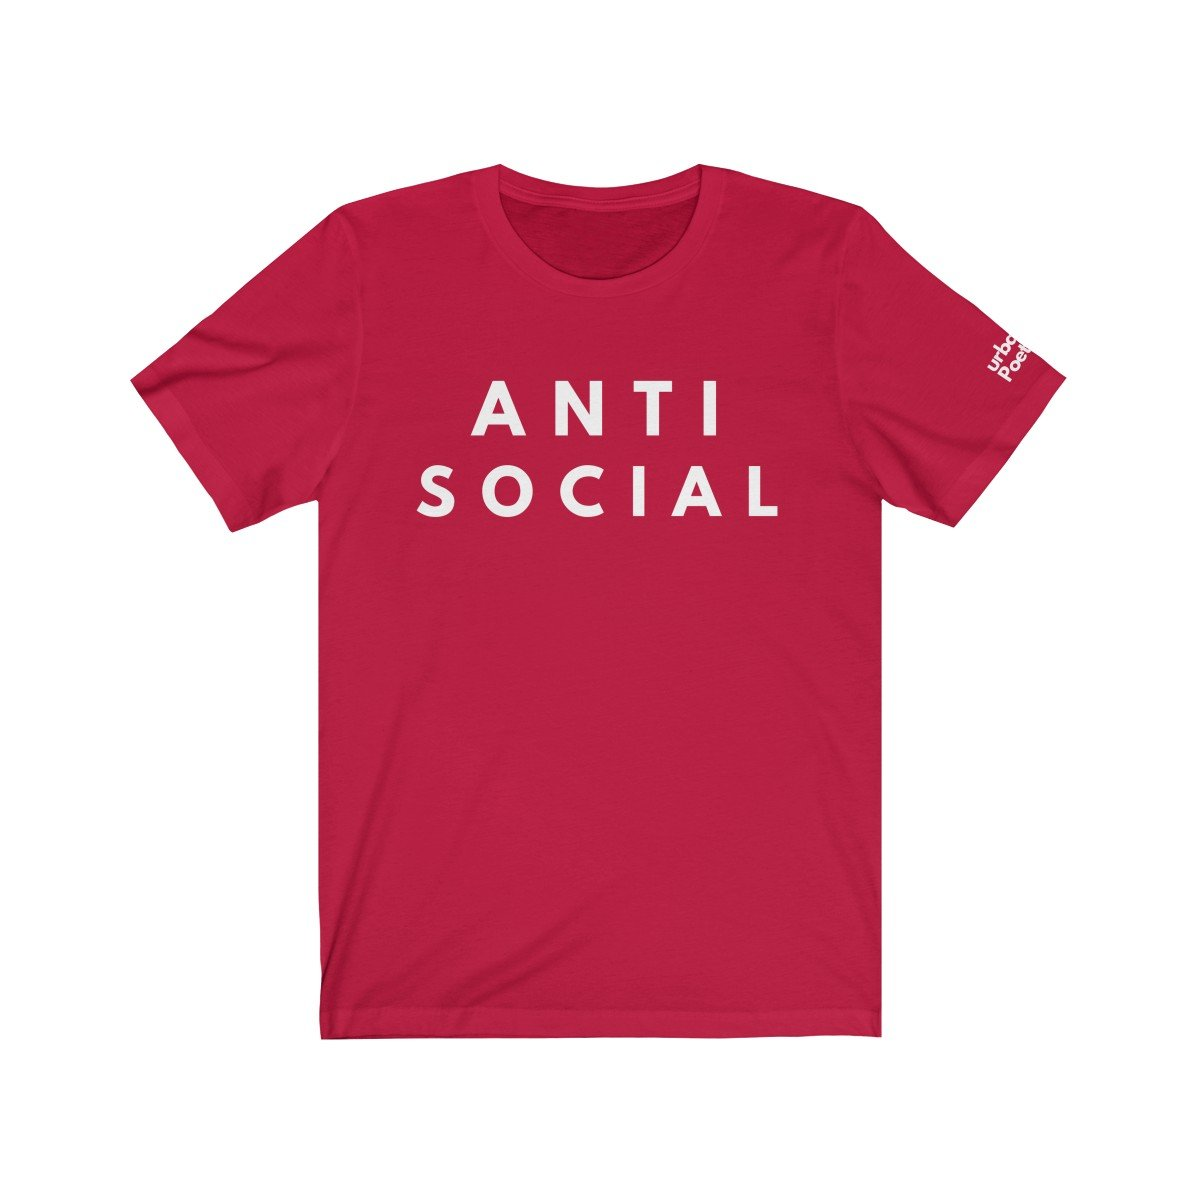 ANTI SOCIAL  Unisex Tee Shirt Red